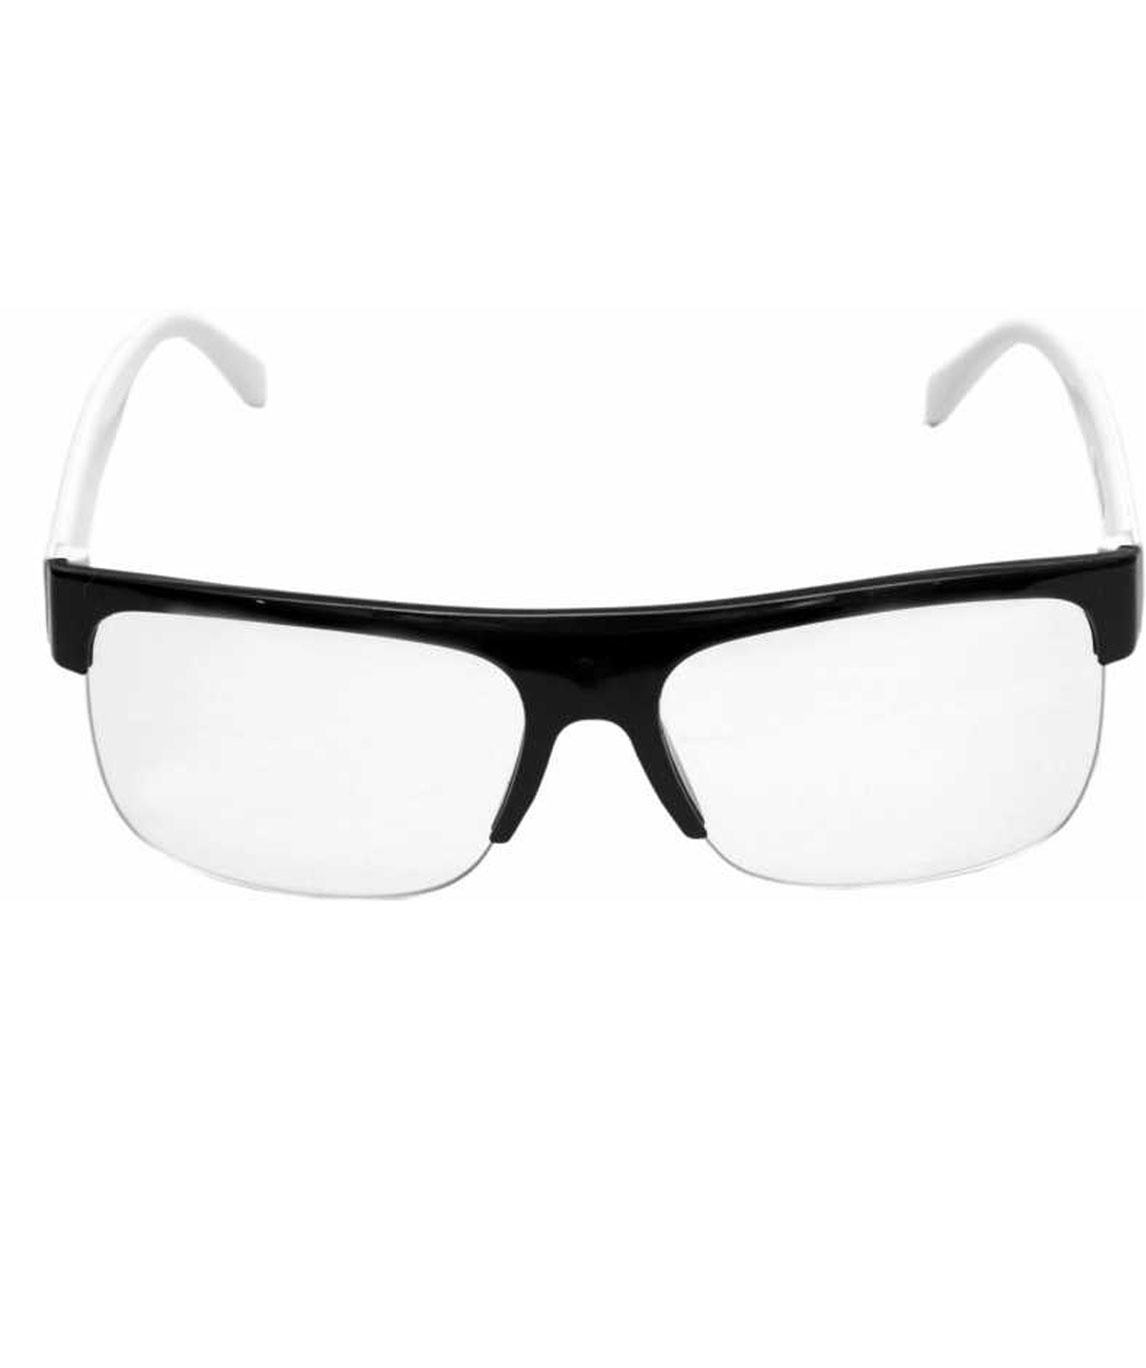 SPECTACLE SUNGLASSES (55) (CLEAR)